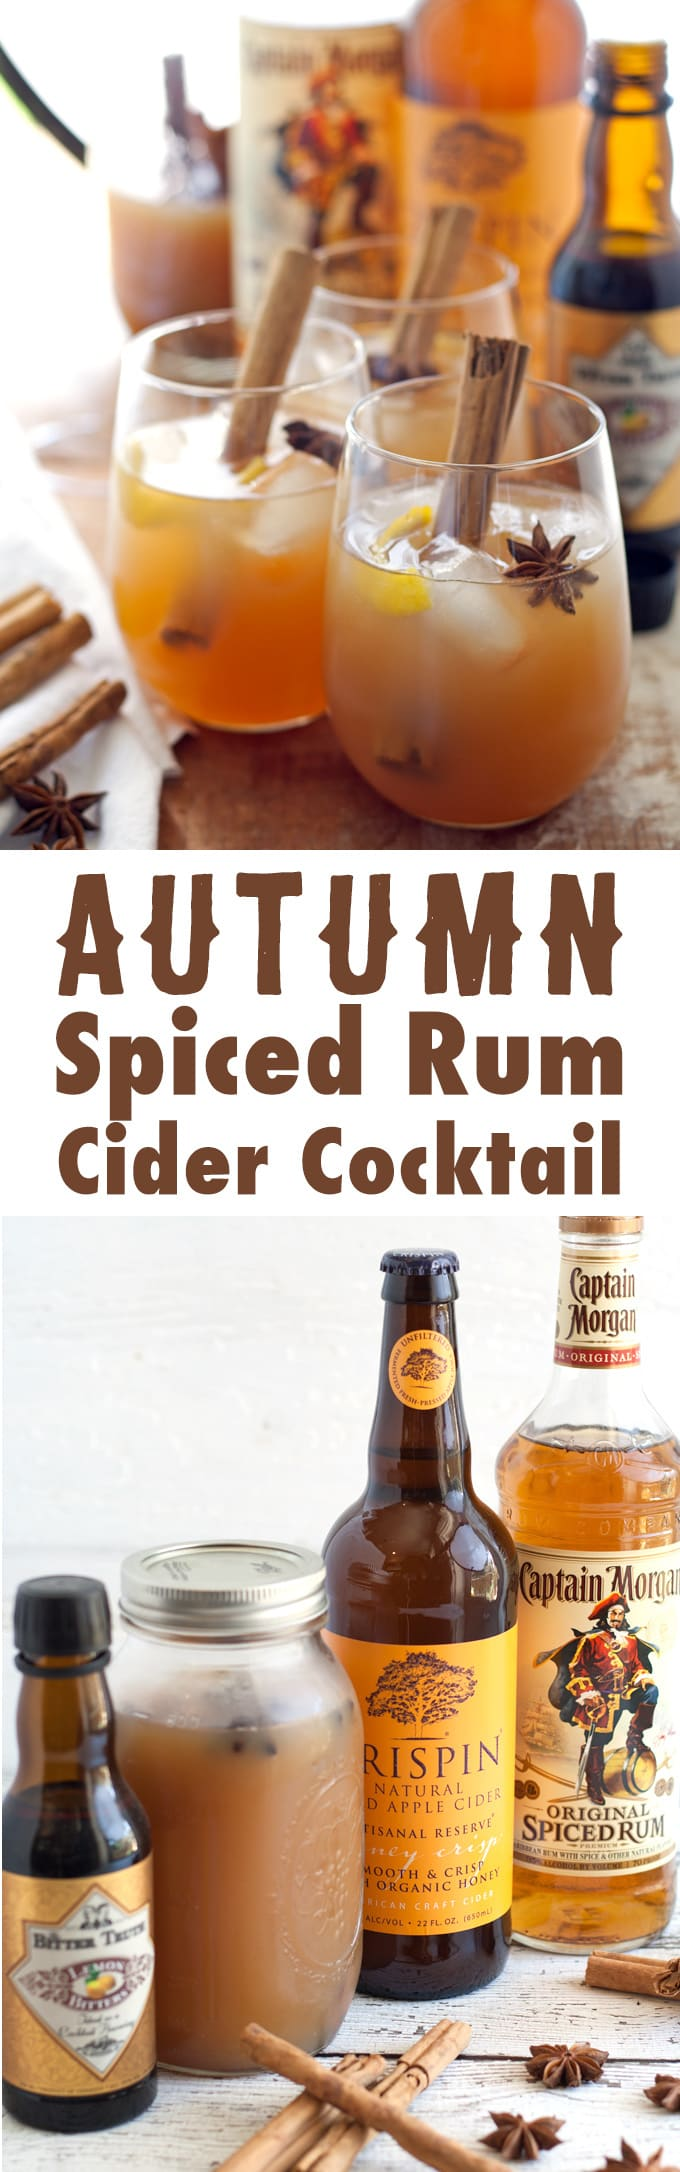 Autumn Spiced Rum Cider Cocktail long pin